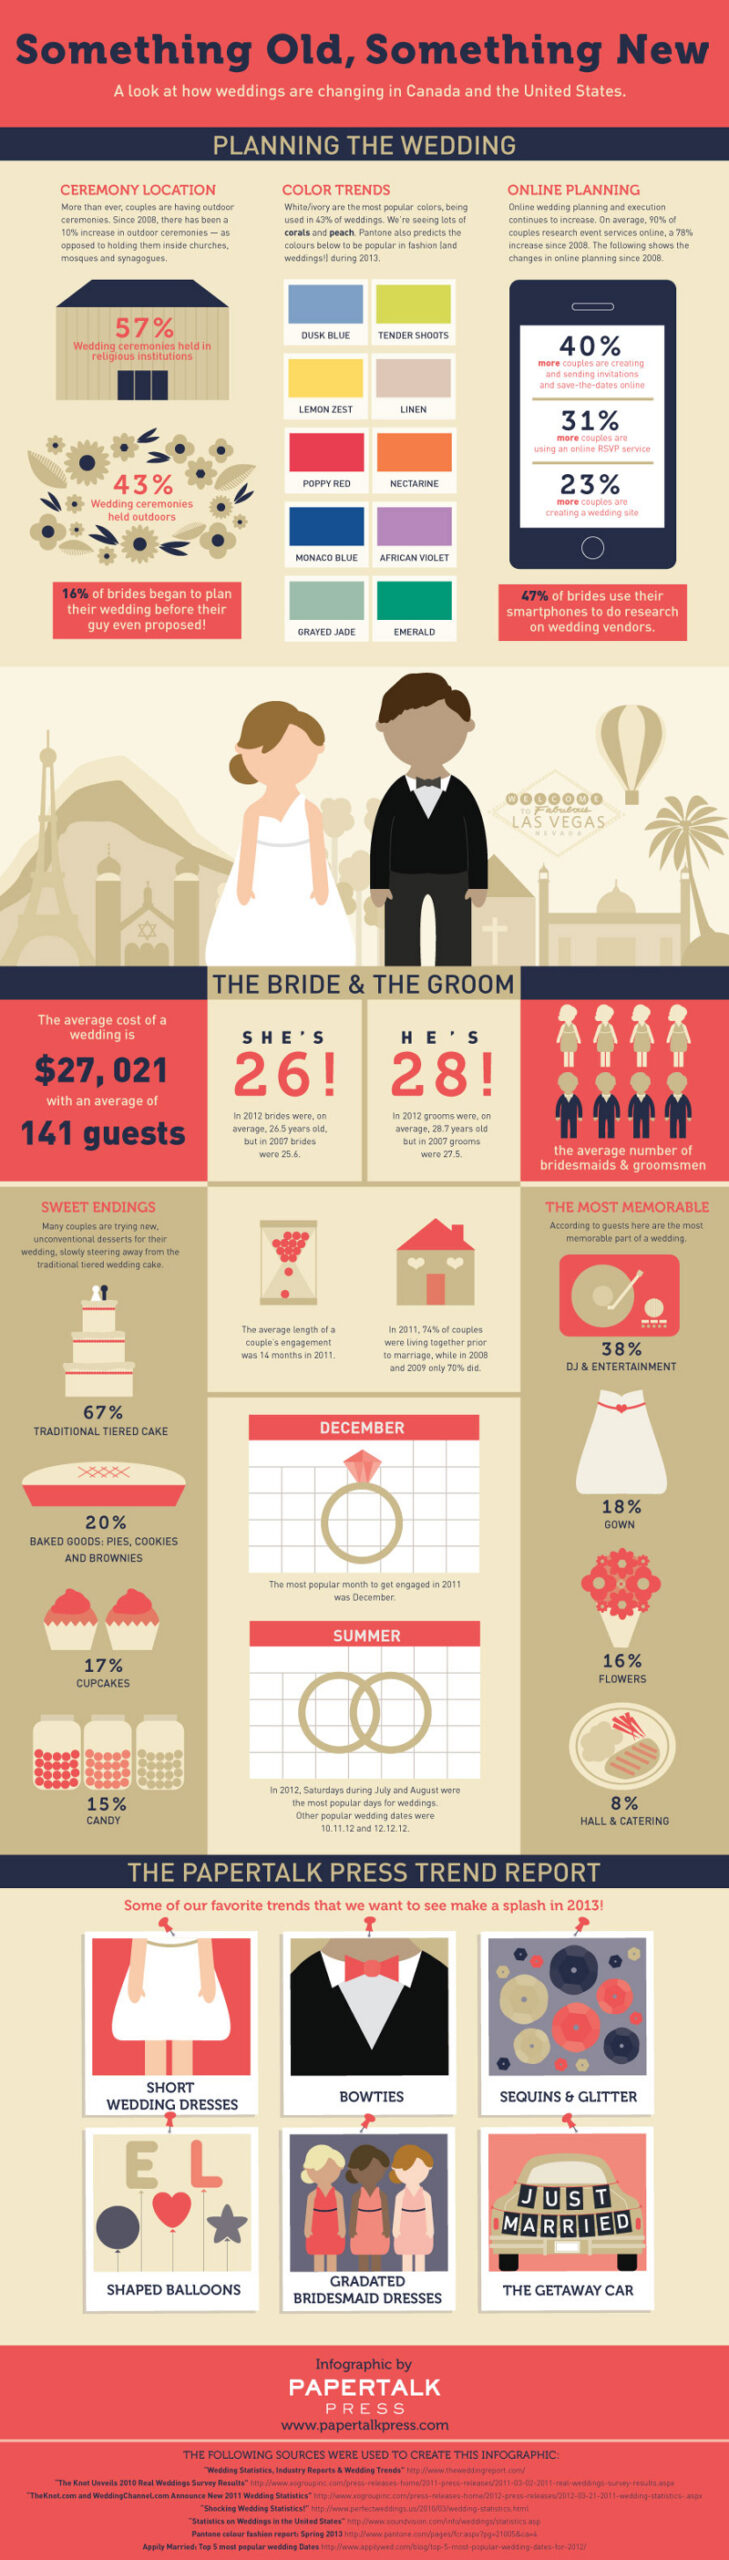 Infographic that shows the trends in the wedding industry